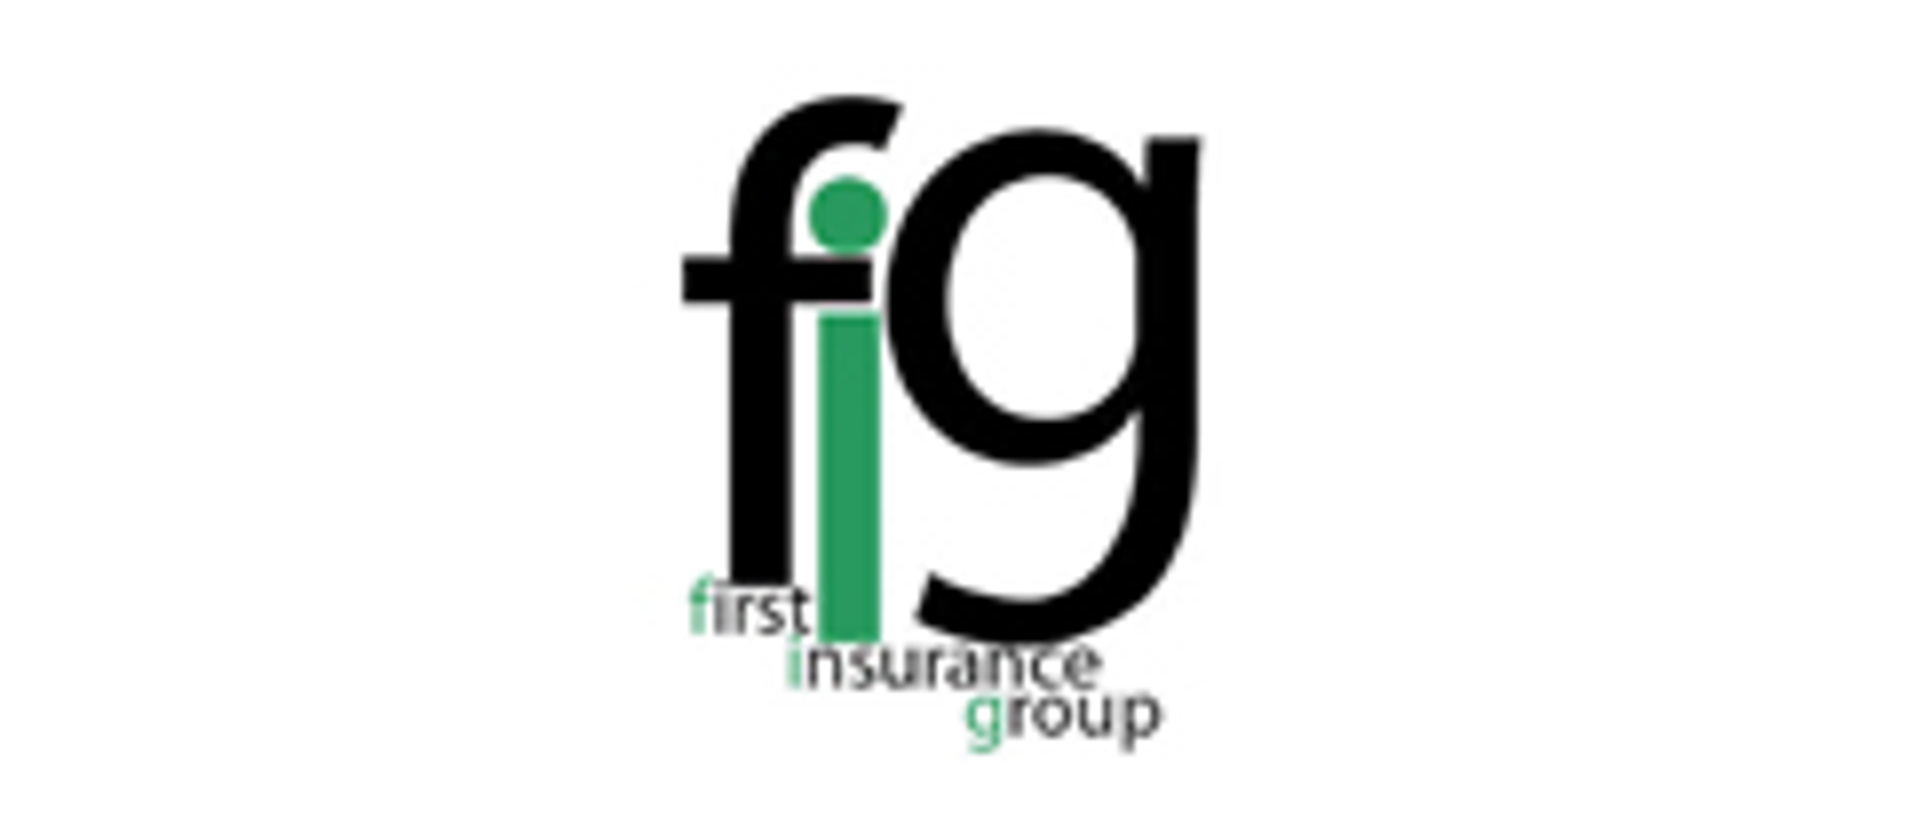 FIG Insurance Group